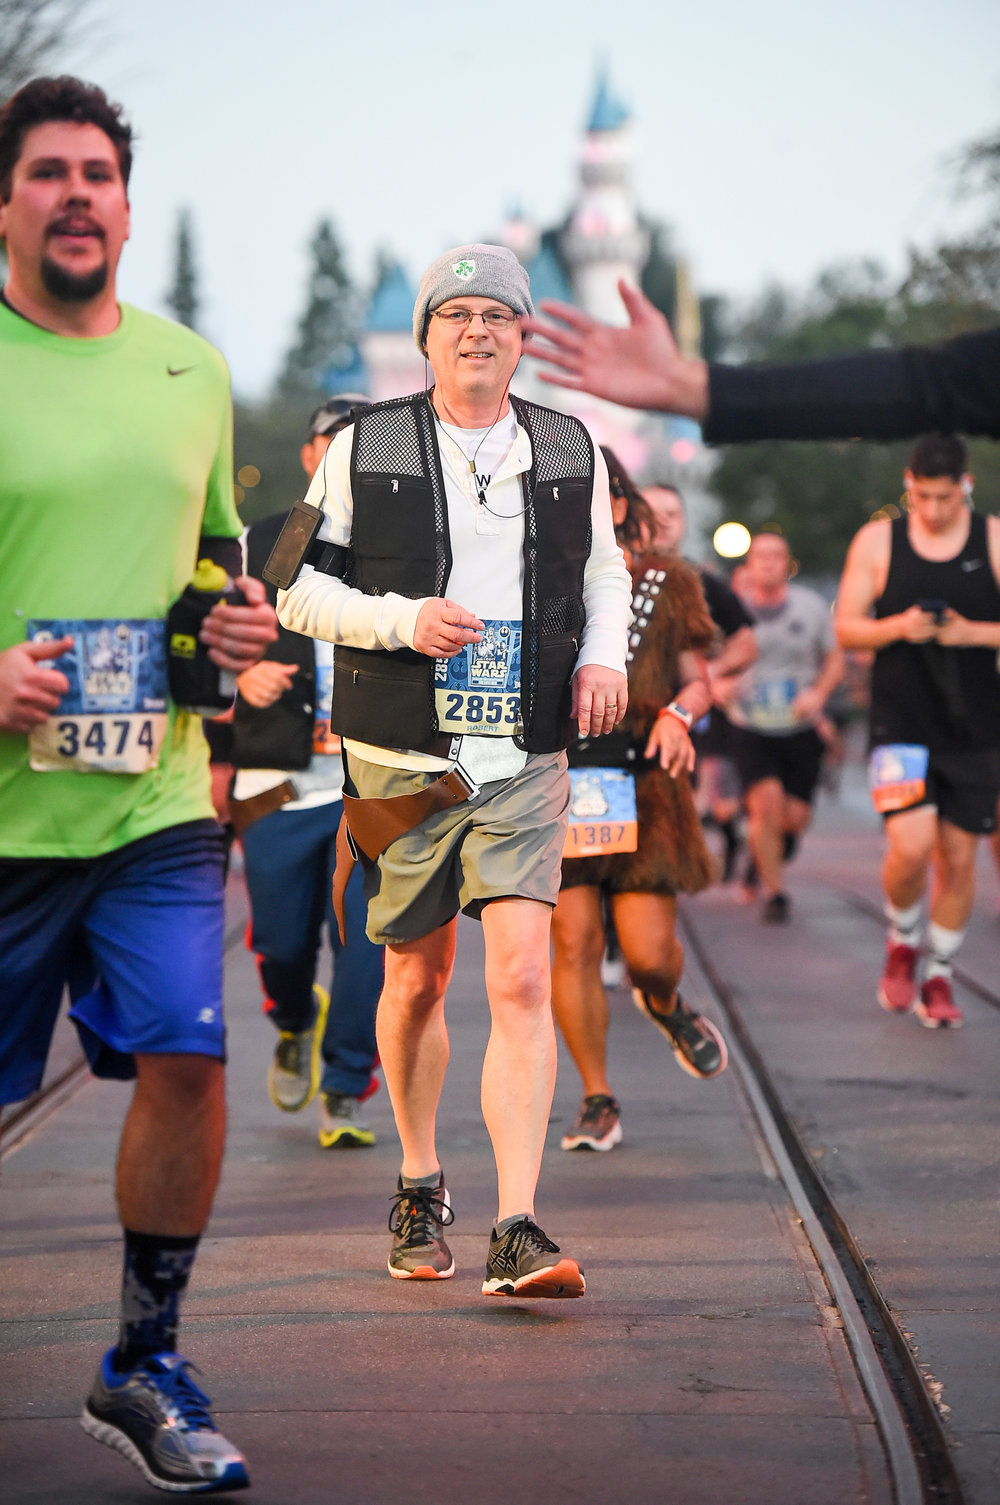 RUNDISNEY_DLRMARAACTION19_20170115_396266502614.jpg